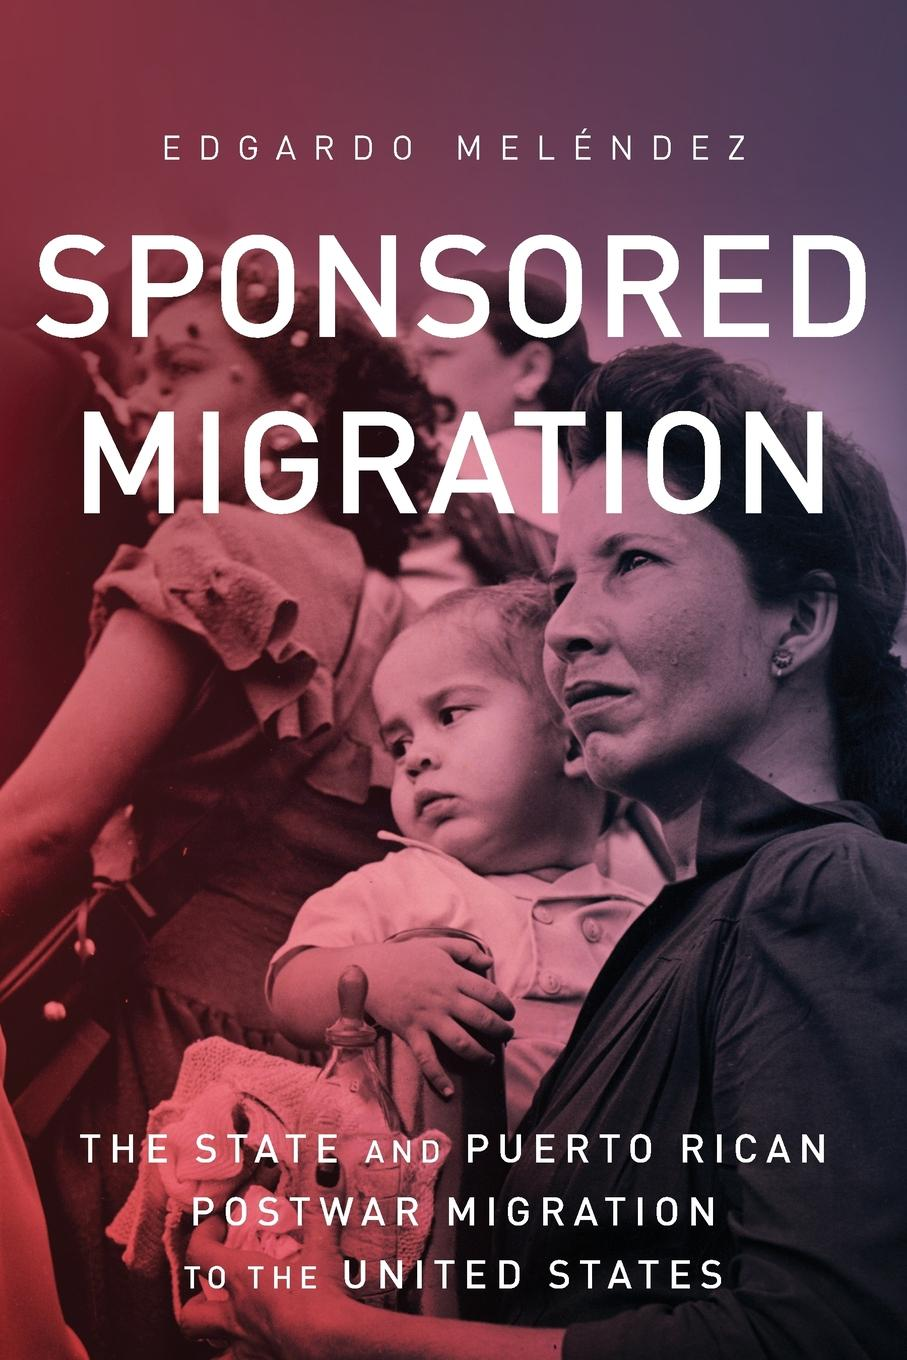 Edgardo Meléndez Sponsored Migration. The State and Puerto Rican Postwar Migration to the United States timothy henderson j beyond borders a history of mexican migration to the united states